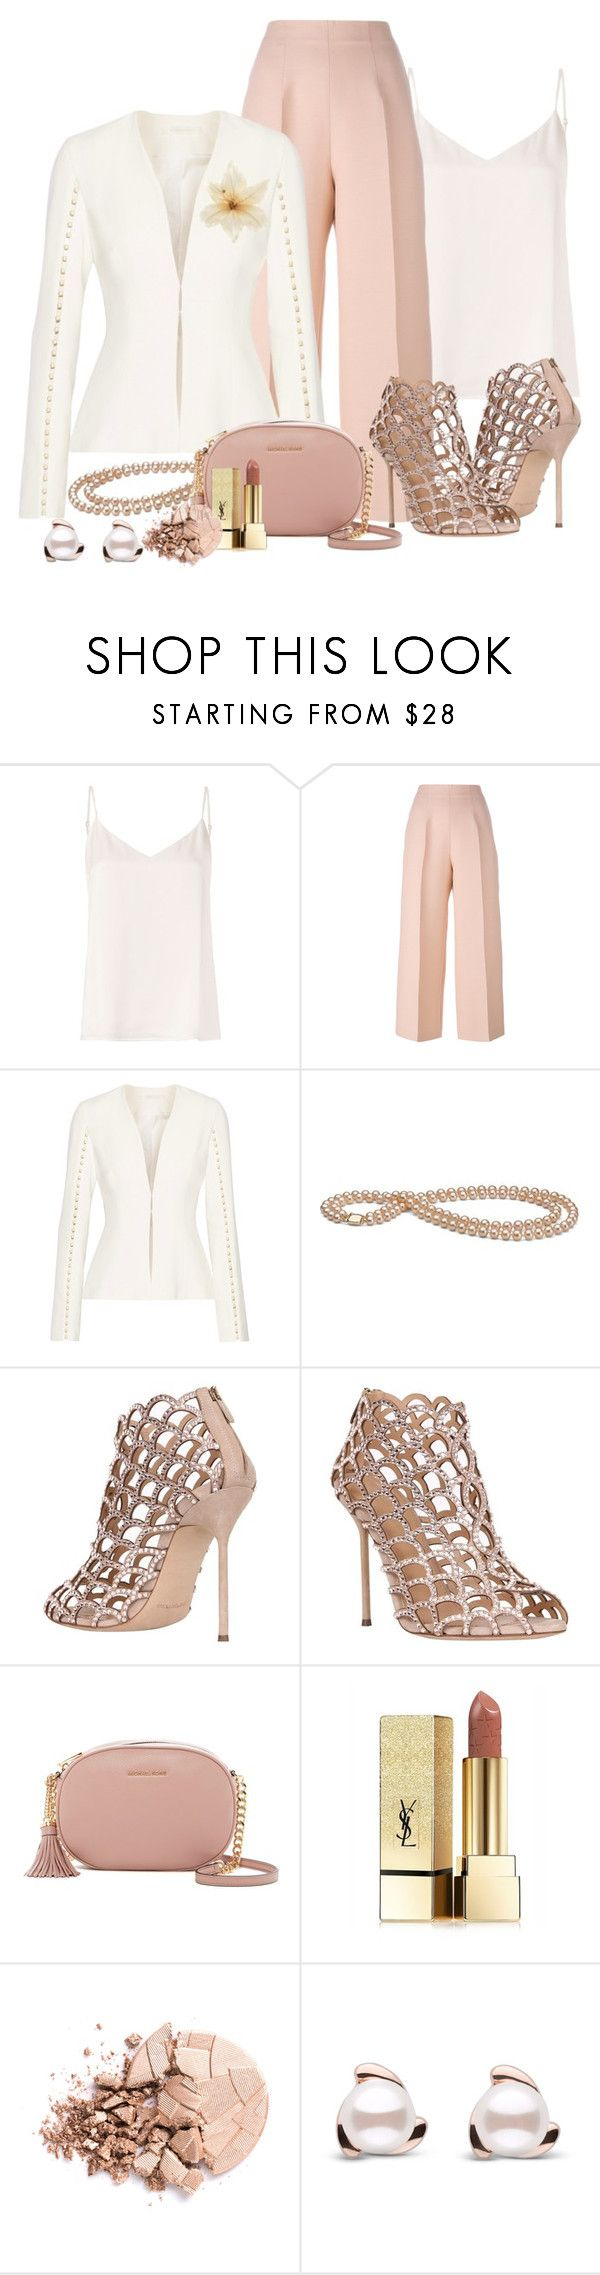 """""""All right, let's get back to work!"""" by ela79 ❤ liked on Polyvore featuring L'Agence, Fendi, Jonathan Simkhai, Sergio Rossi, MICHAEL Michael Kors, Yves Saint Laurent, Anastasia Beverly Hills and Clips"""